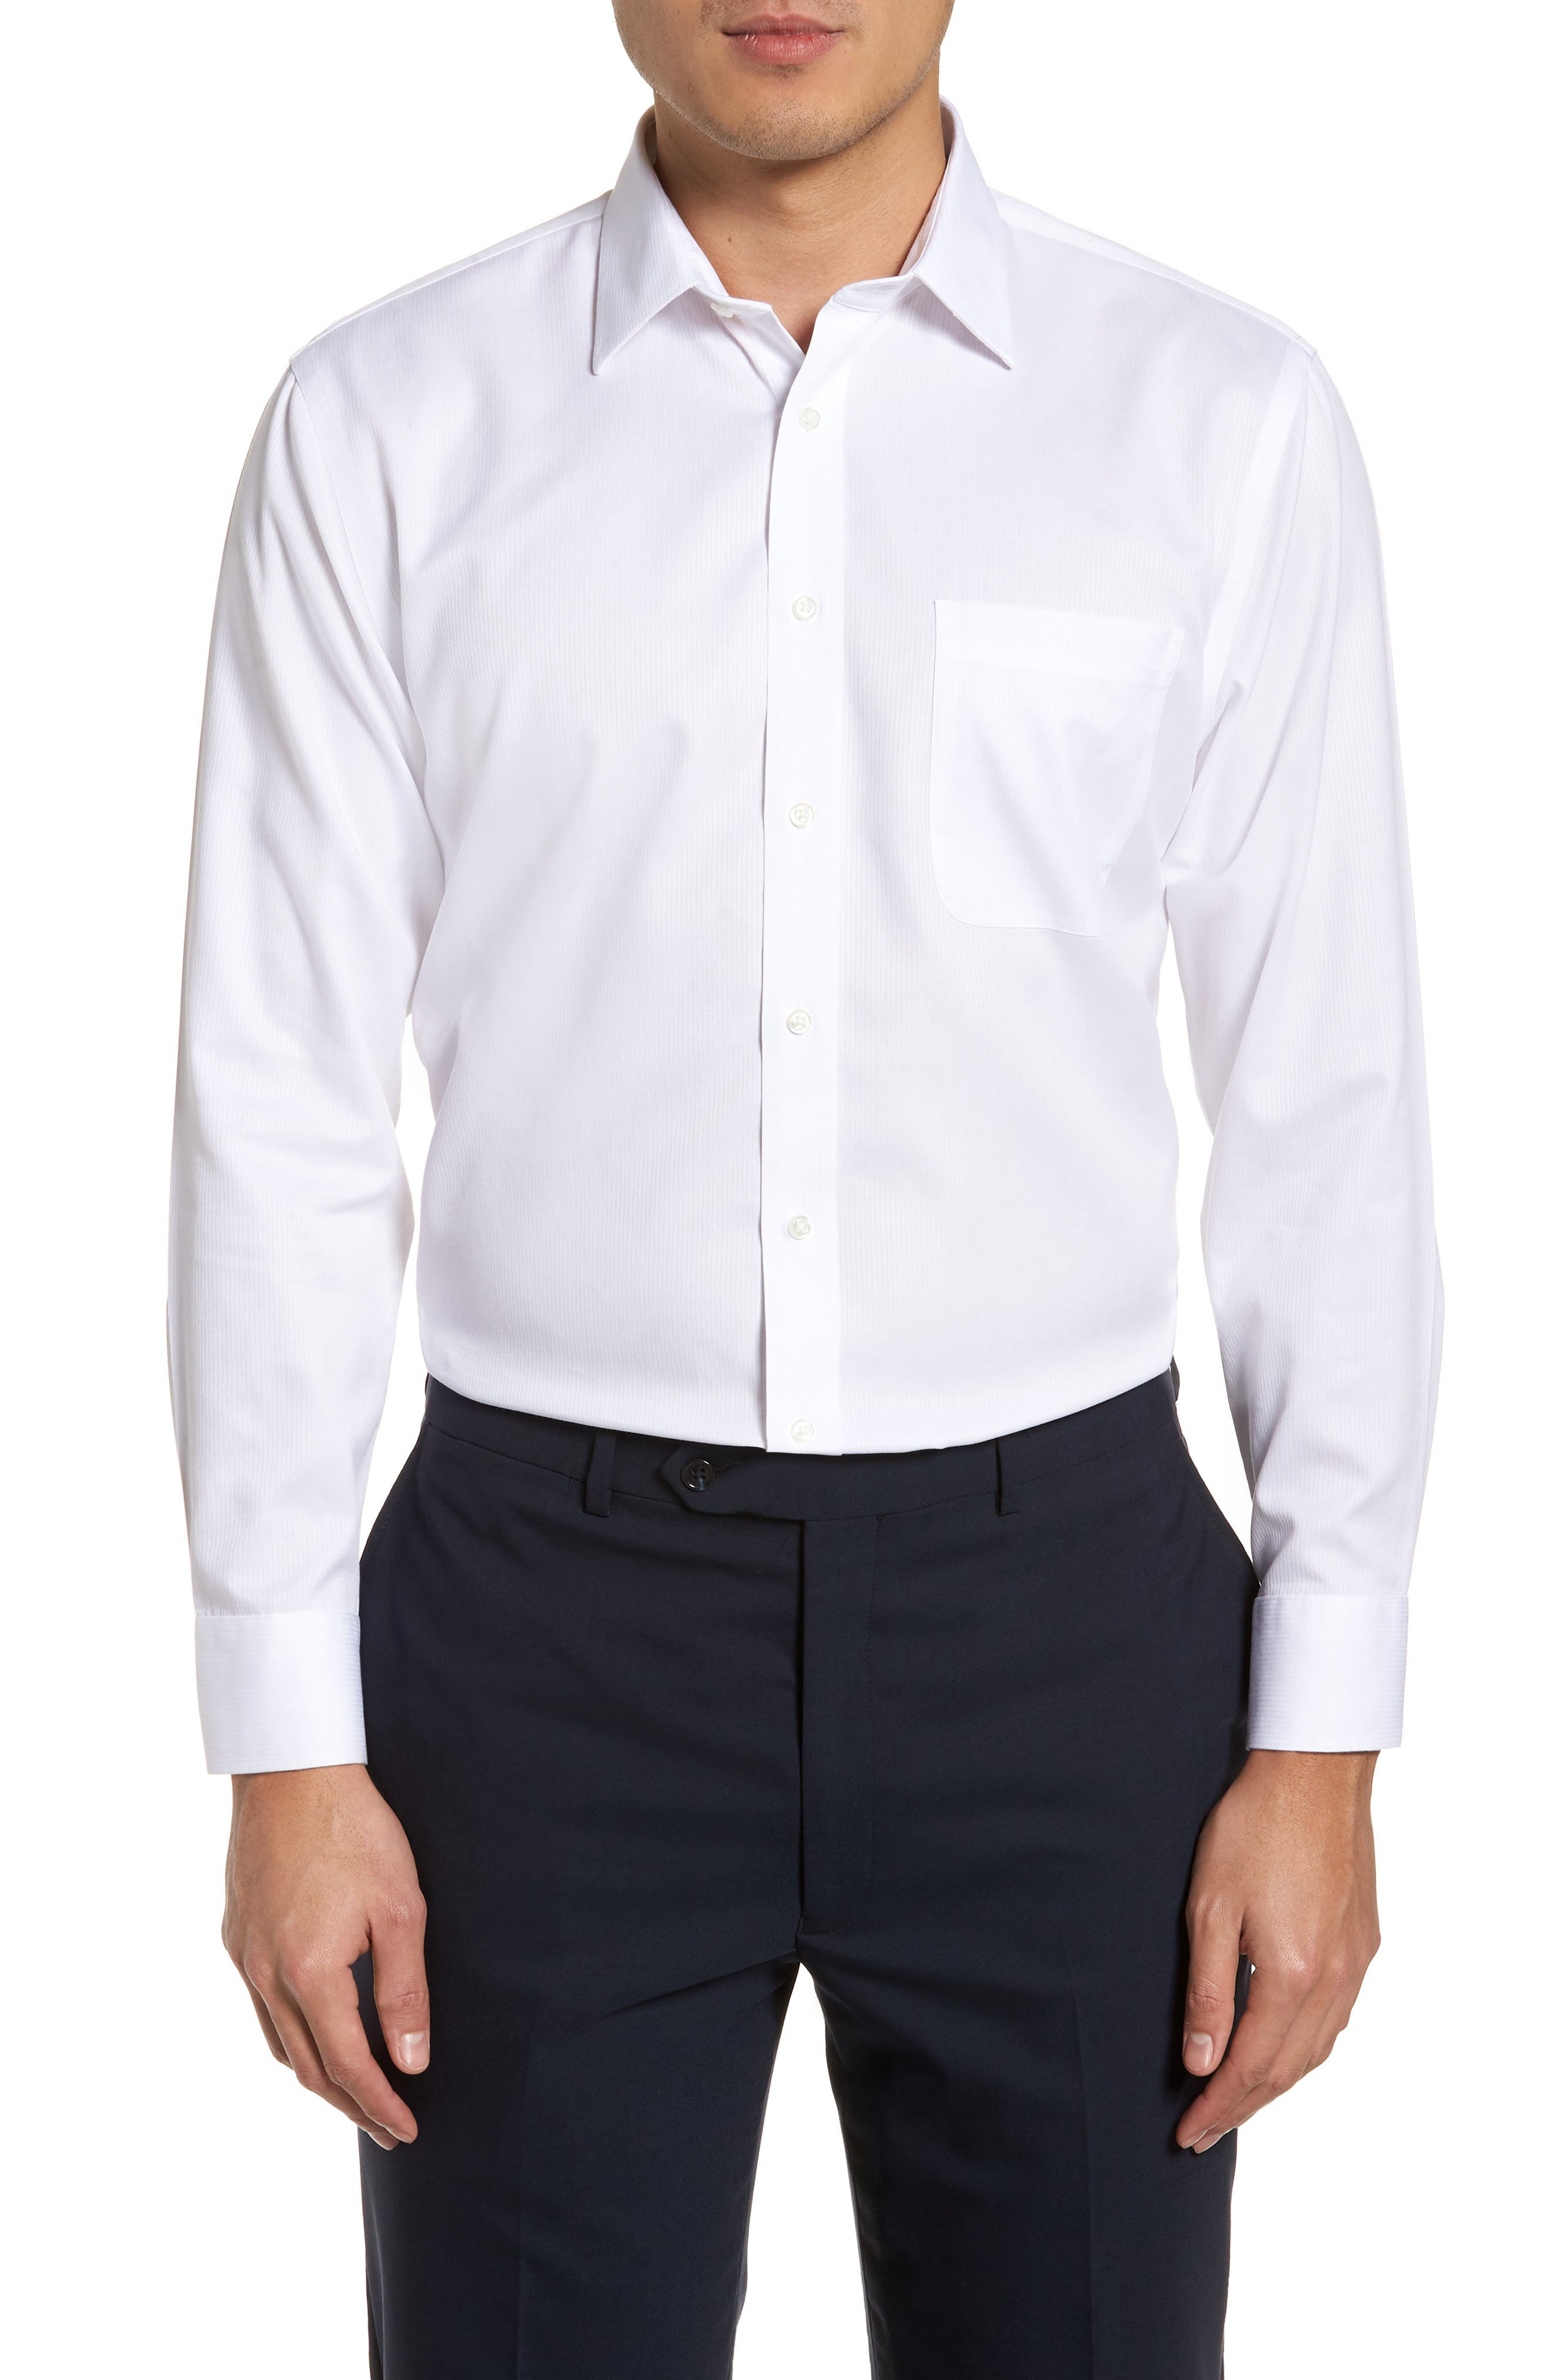 Nordstrom Shop Smartcare(TM) Trim Fit Dress Shirt